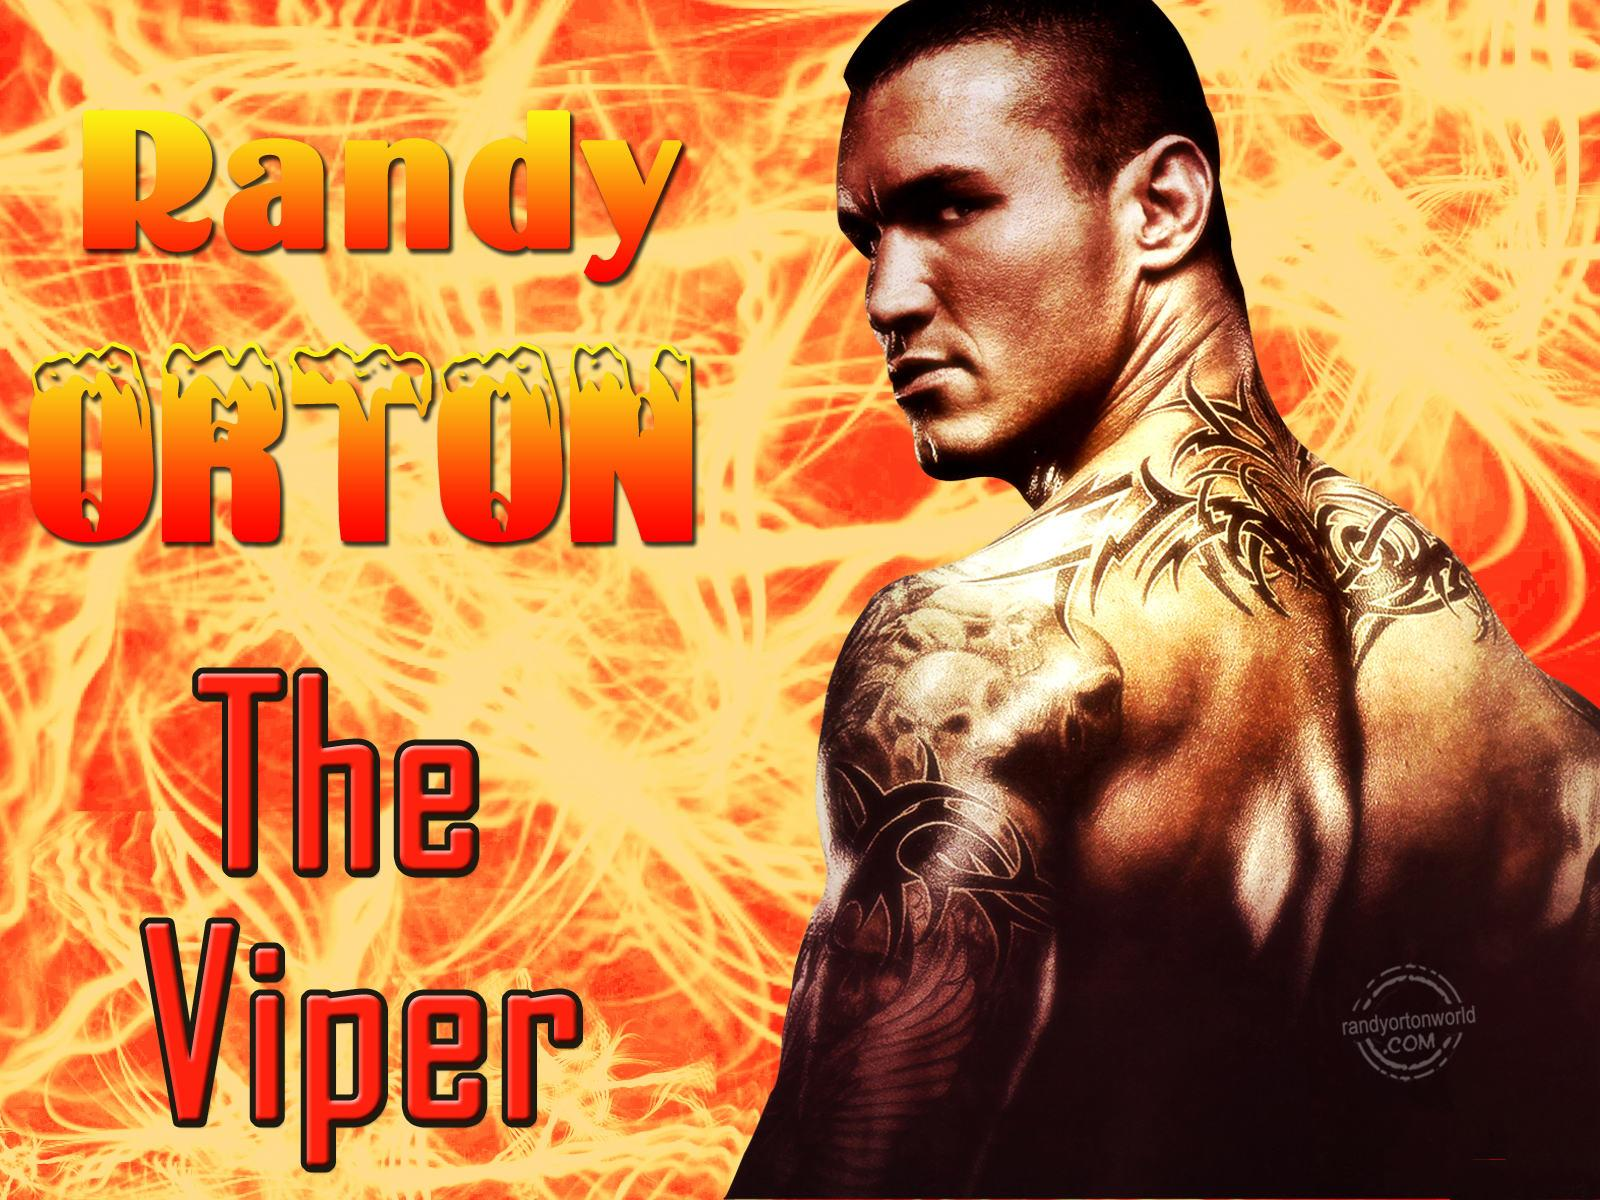 Randy Orton Wallpaper 3D Wallpaper Nature Wallpaper 1600x1200